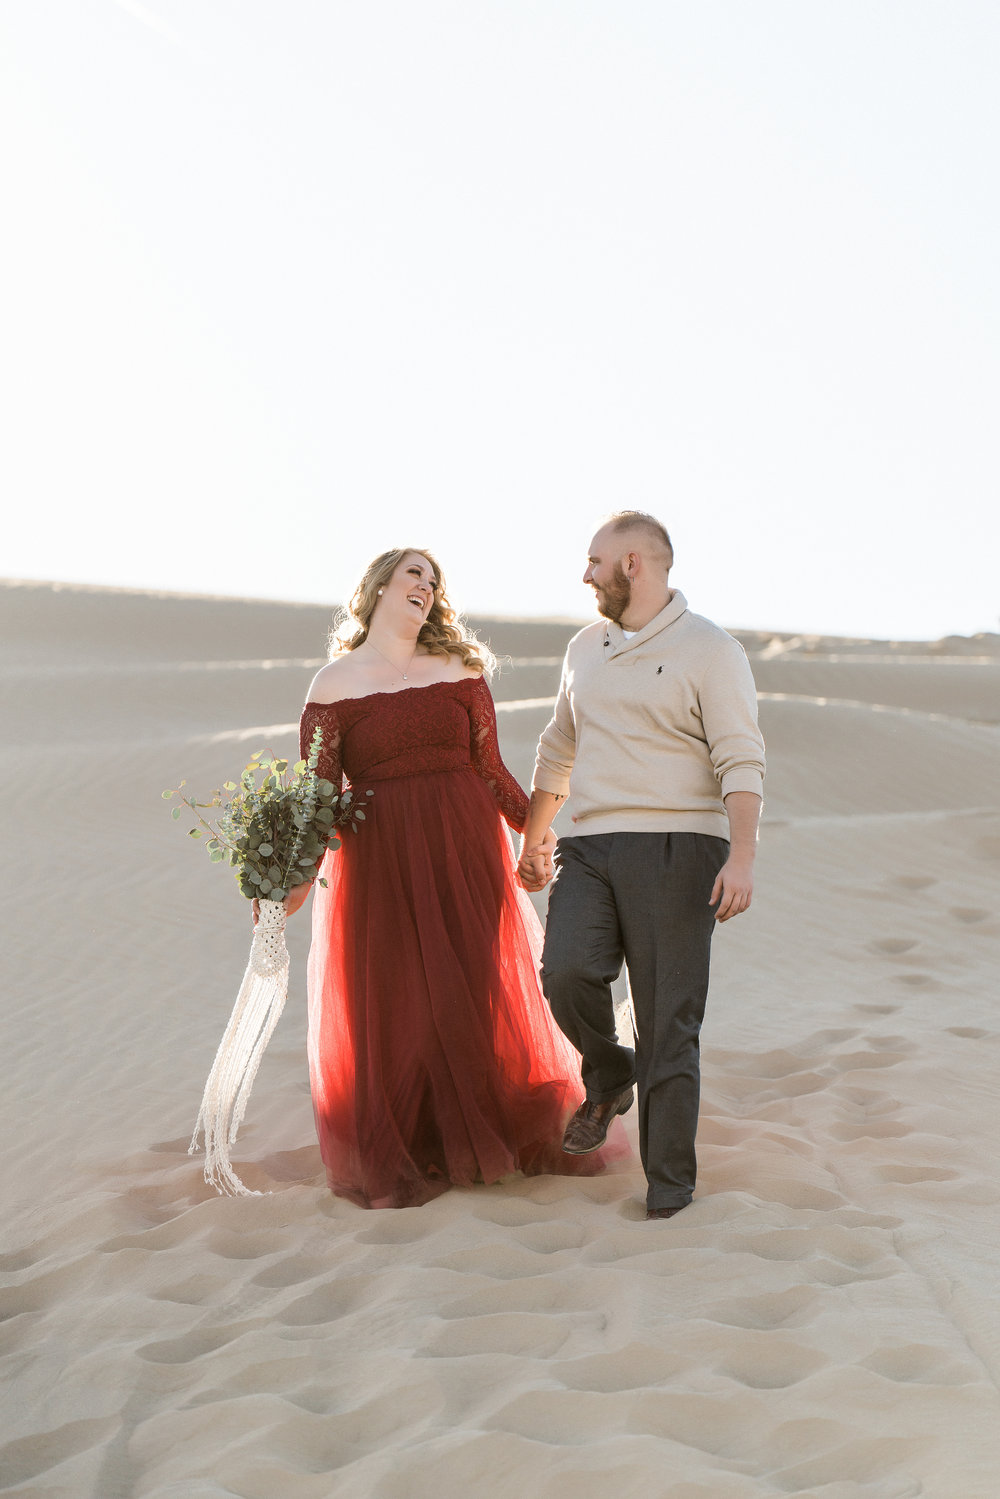 NewMexico-Sand-Dunes-Engagement-Carissa-and-Ben-1069.jpg